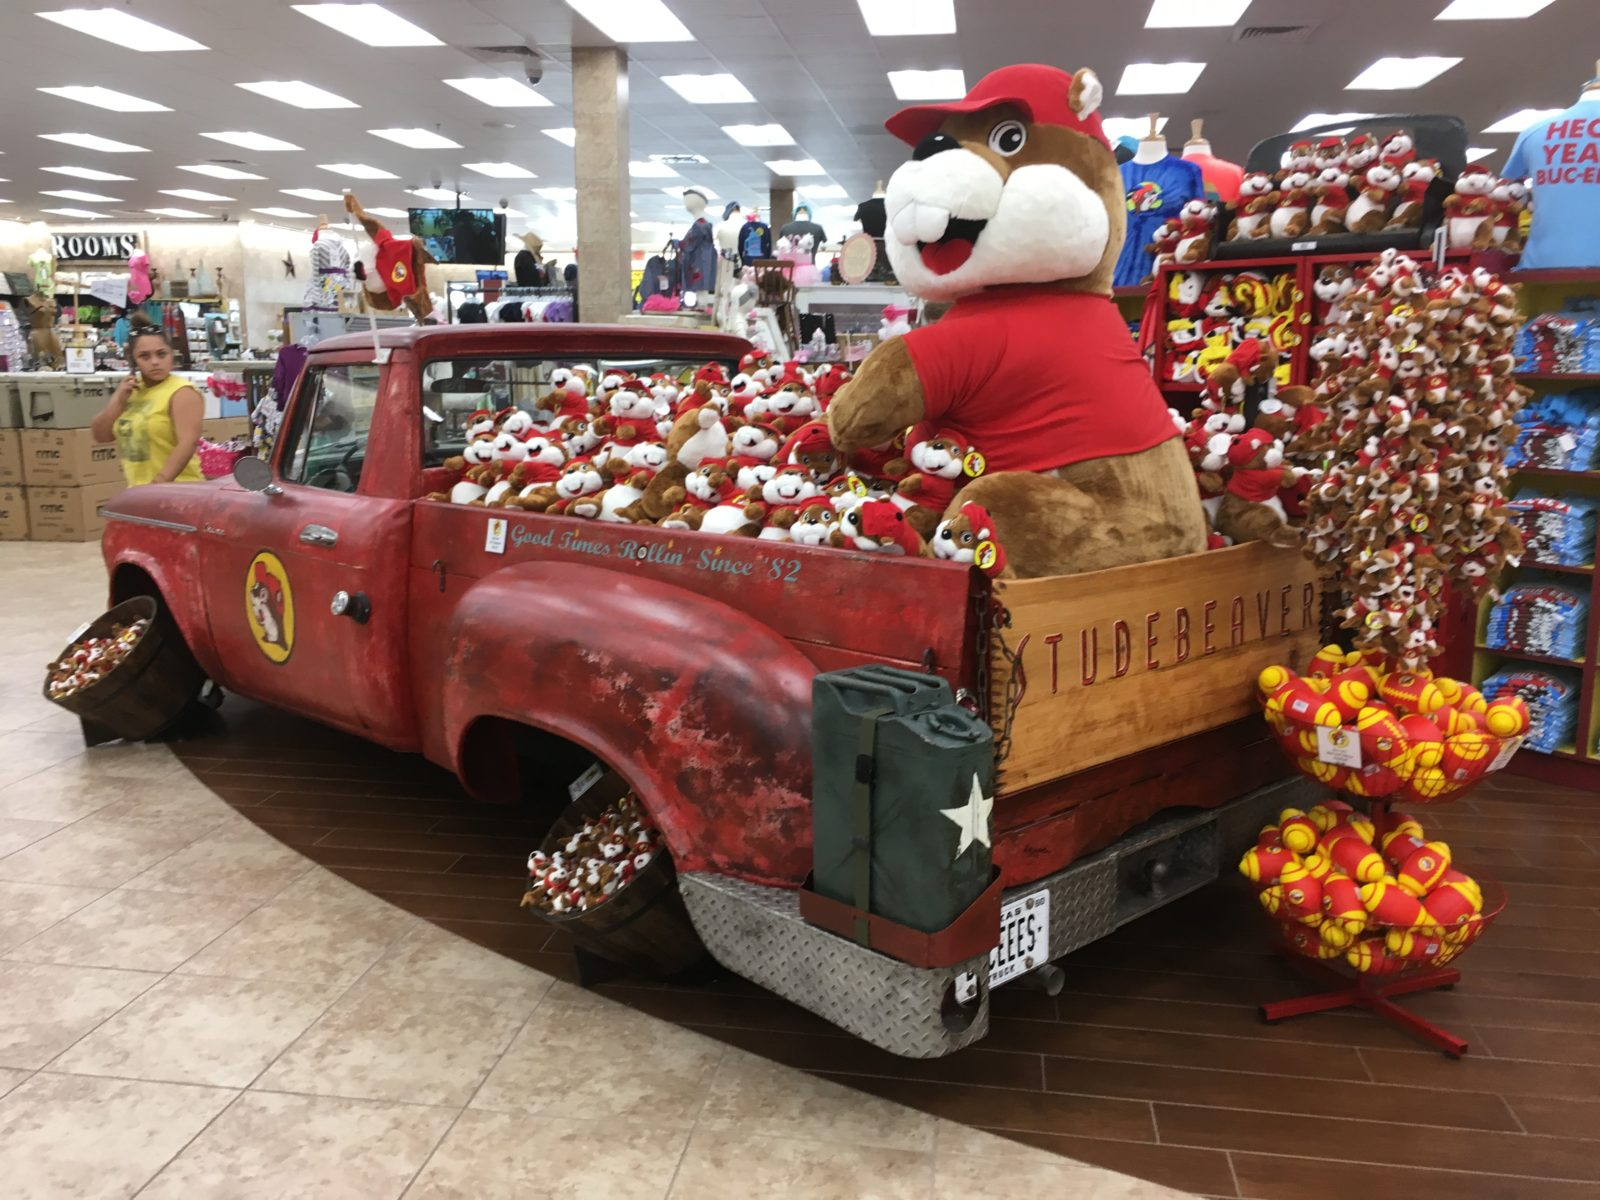 A pickup truck full of Buc-ee's merchandise.